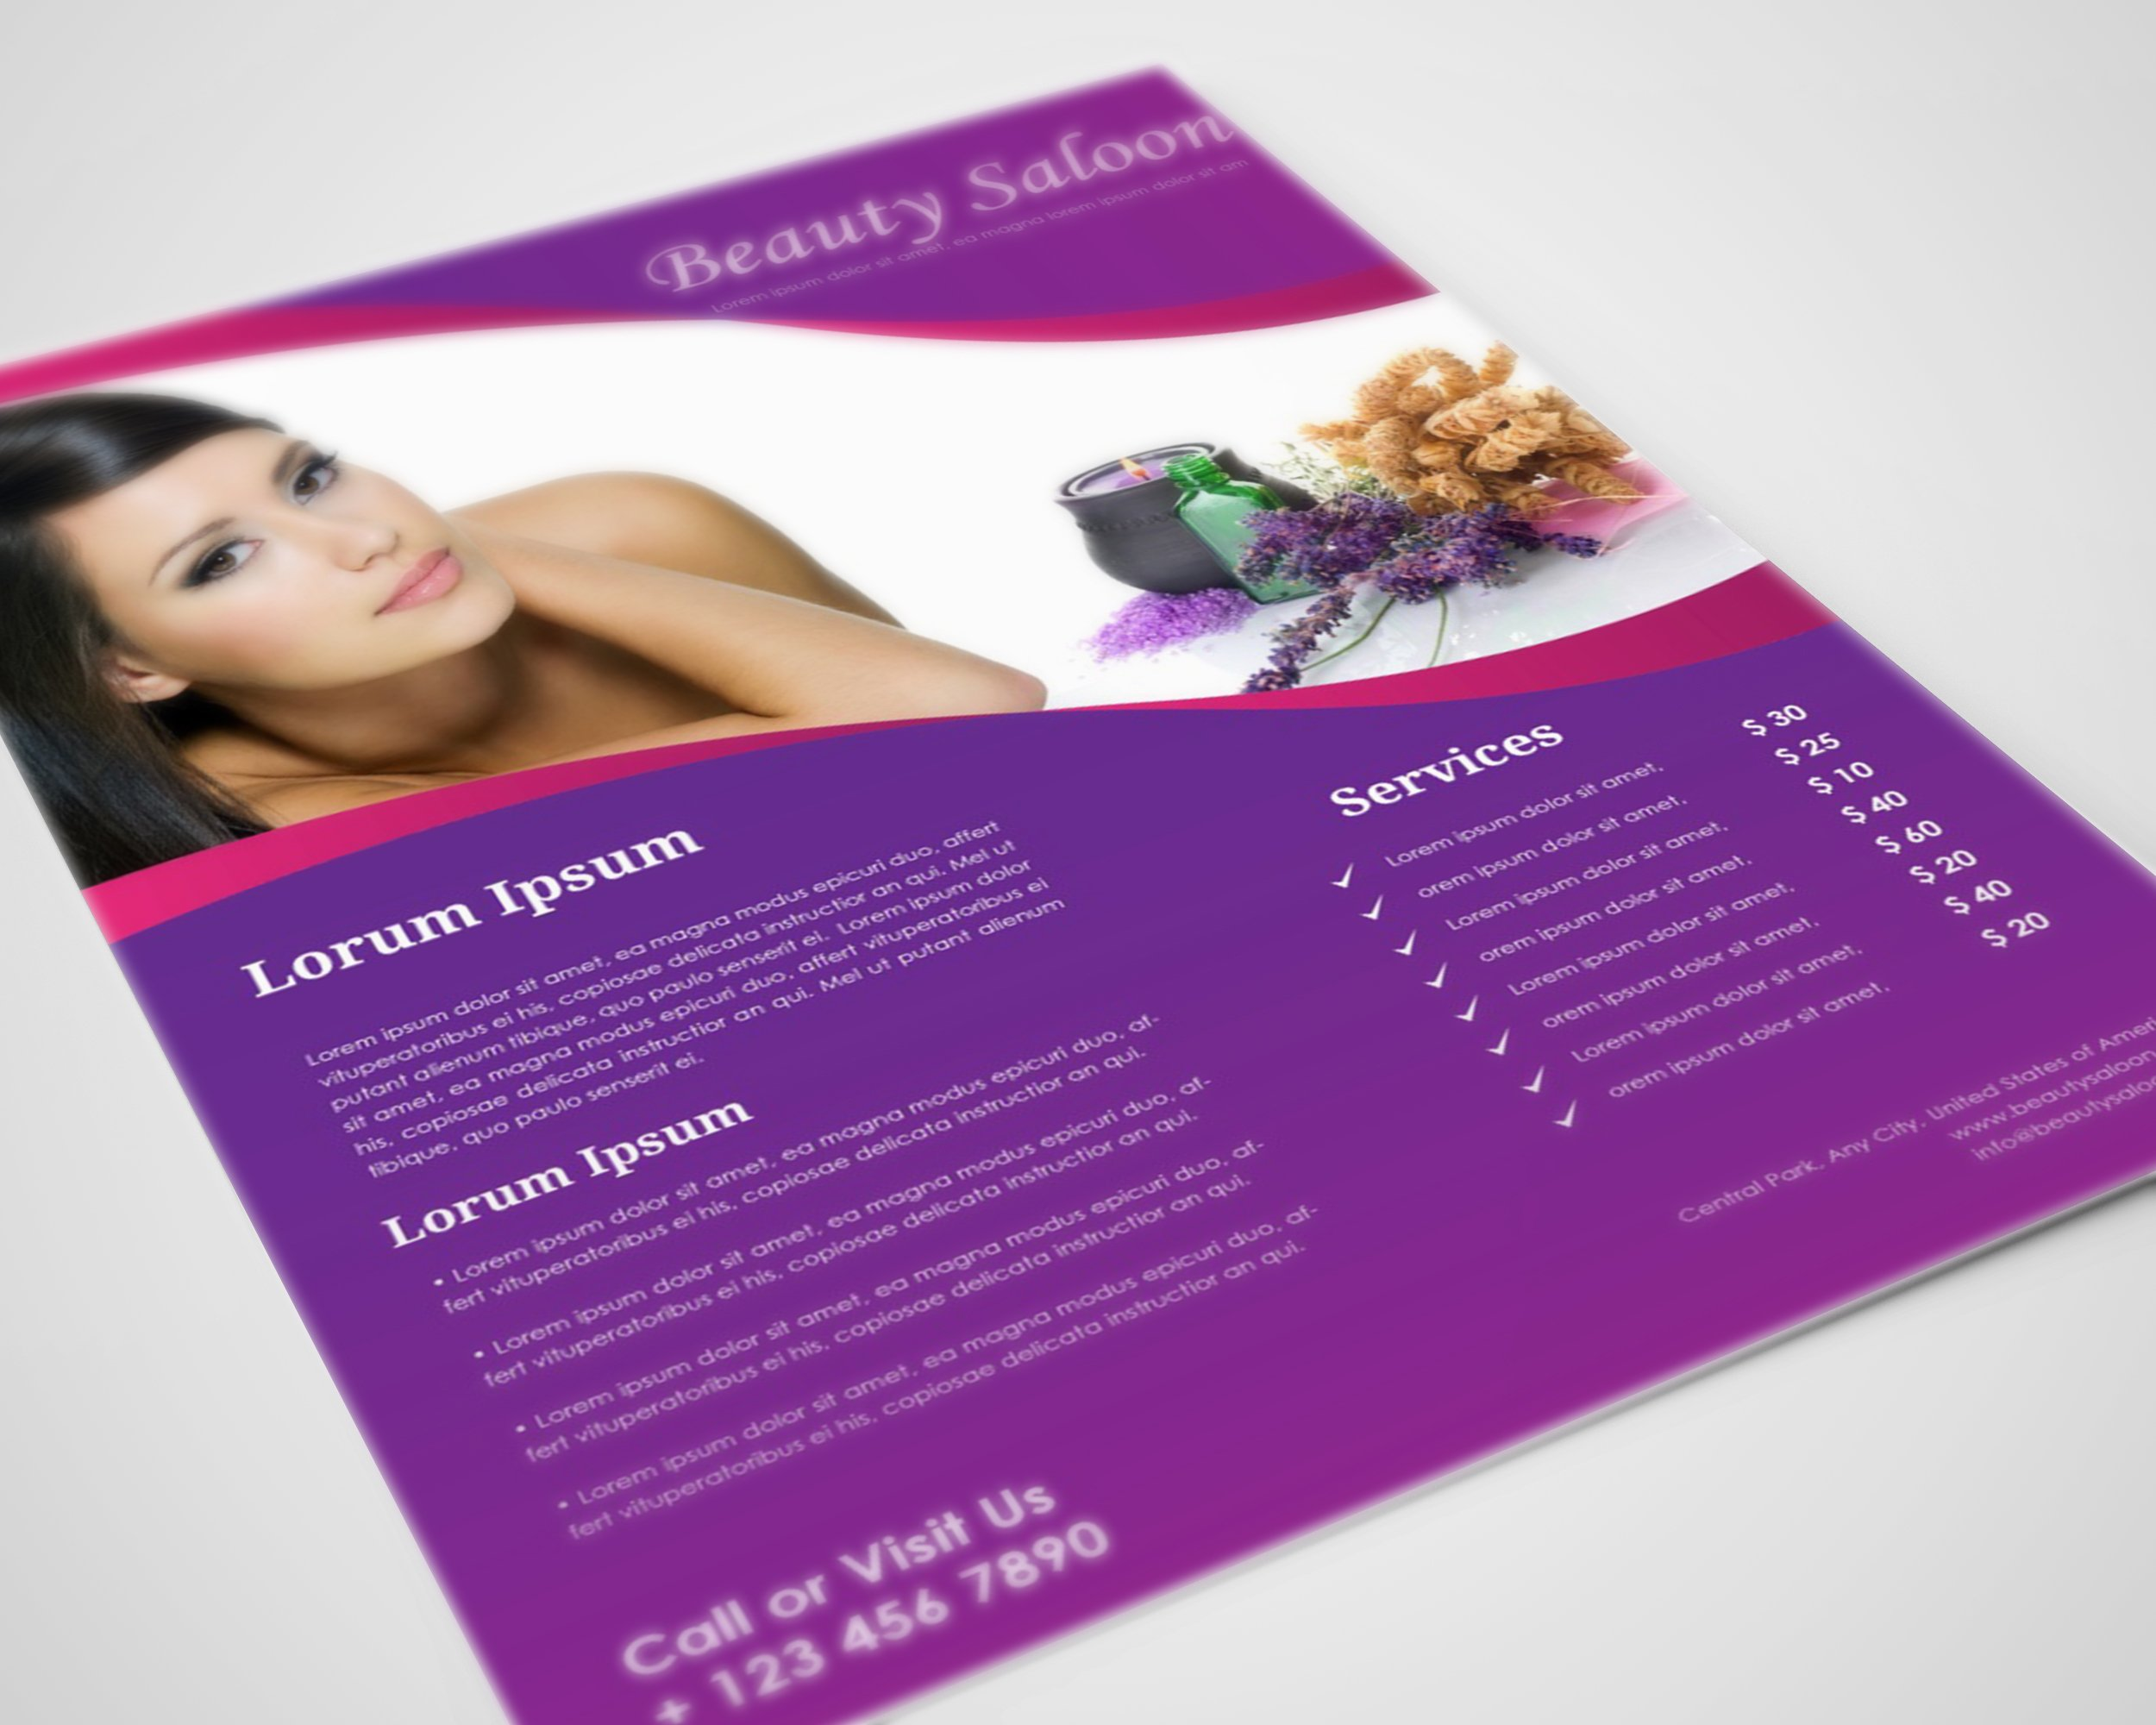 Beauty Salon Flyer Template ~ Flyer Templates ~ Creative Market